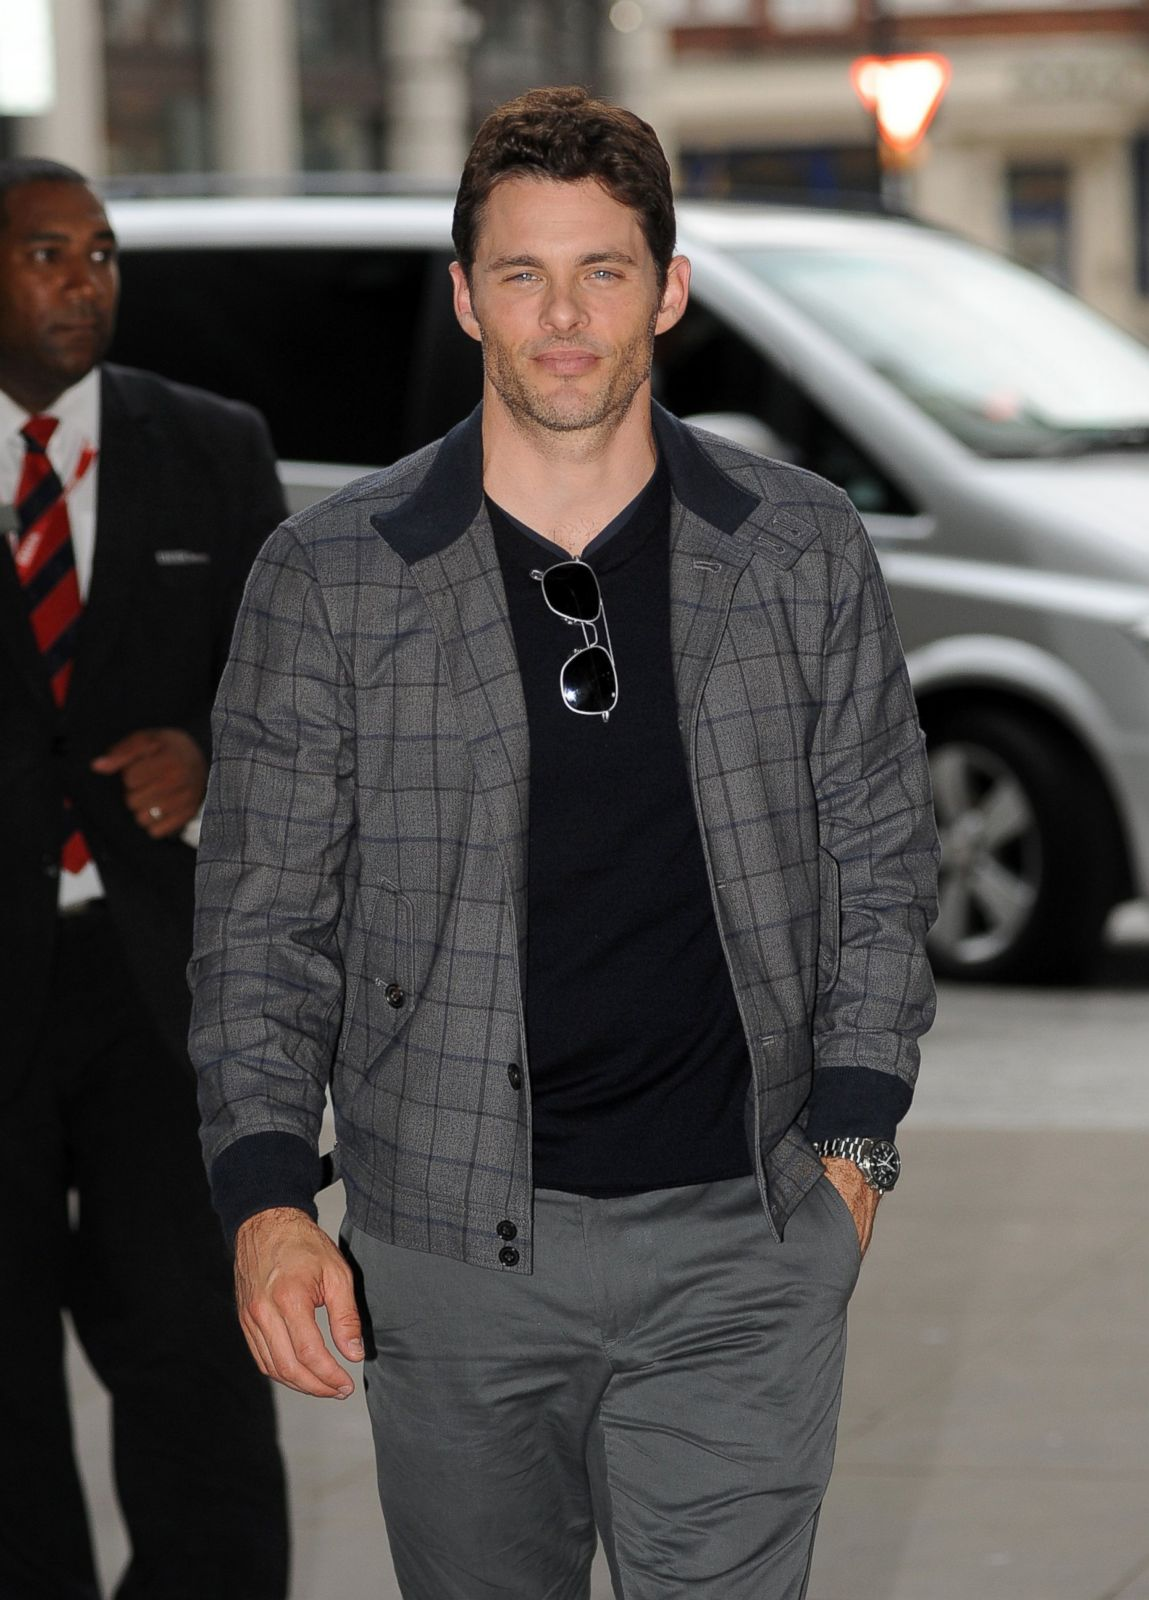 James Marsden Steps Out in London Picture | September's Top Celebrity Pictures - ABC News